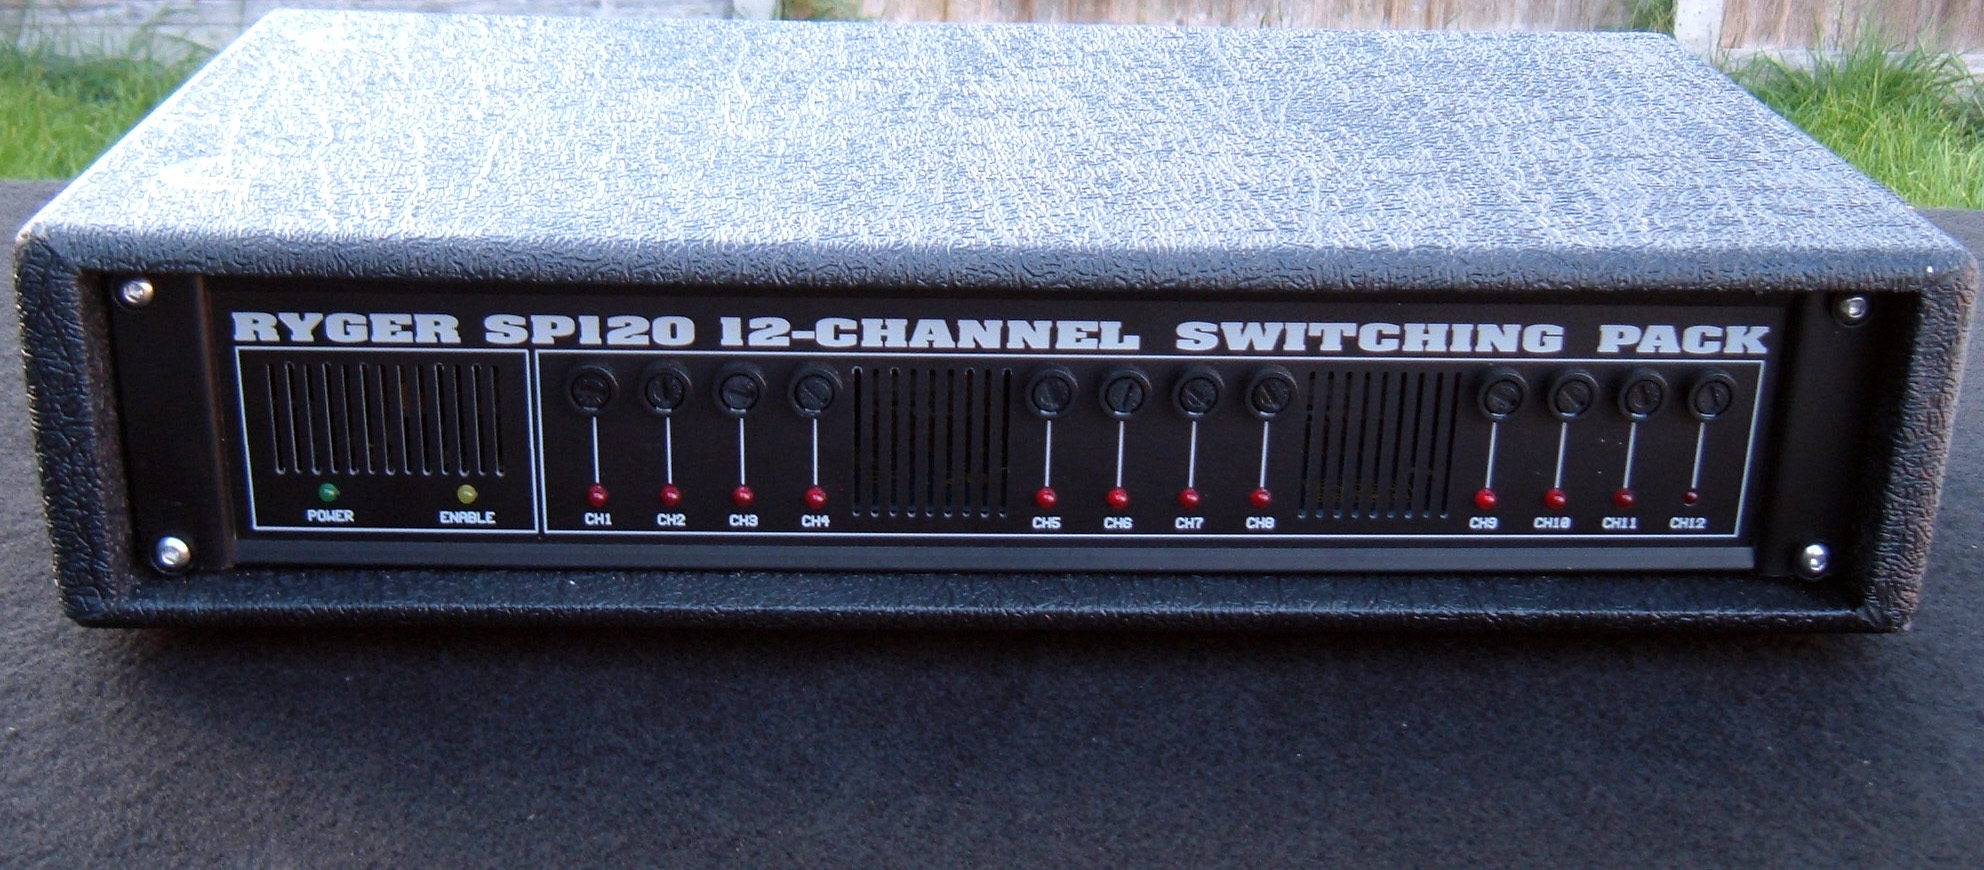 Ryger SP120 12chan switch